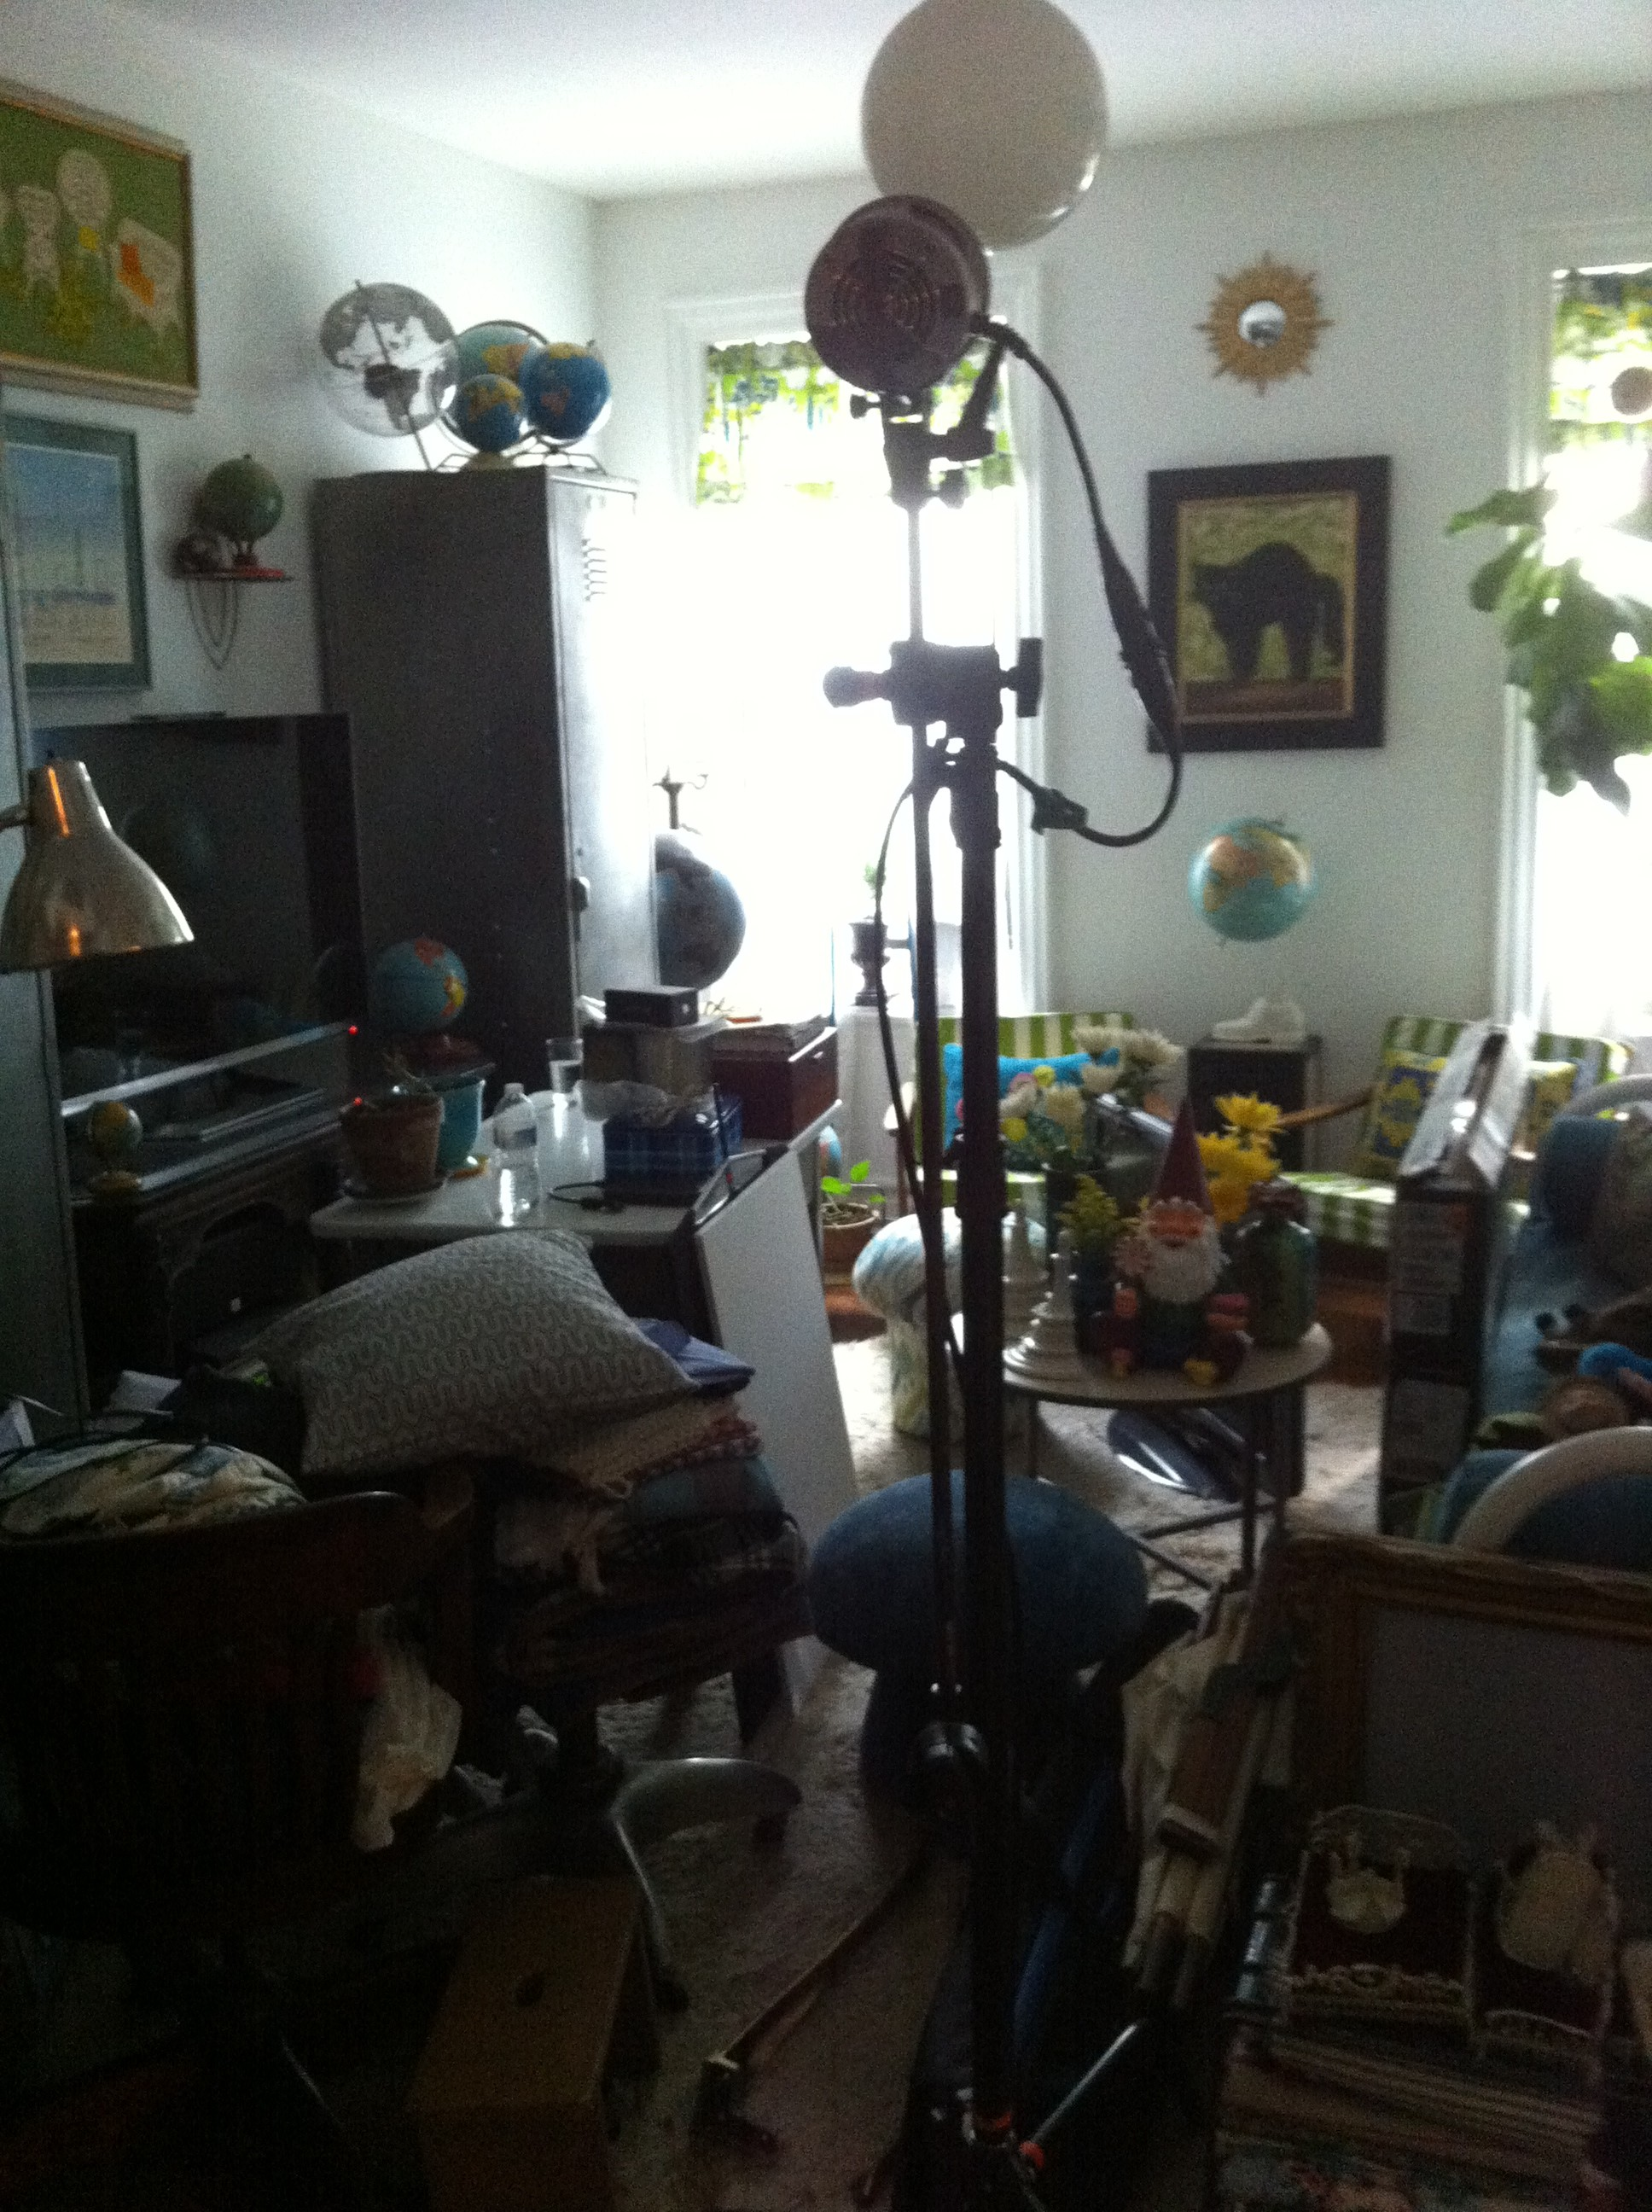 A pic of PJ Mehaffey's messed up living room during a photo shoot by Bob Martus